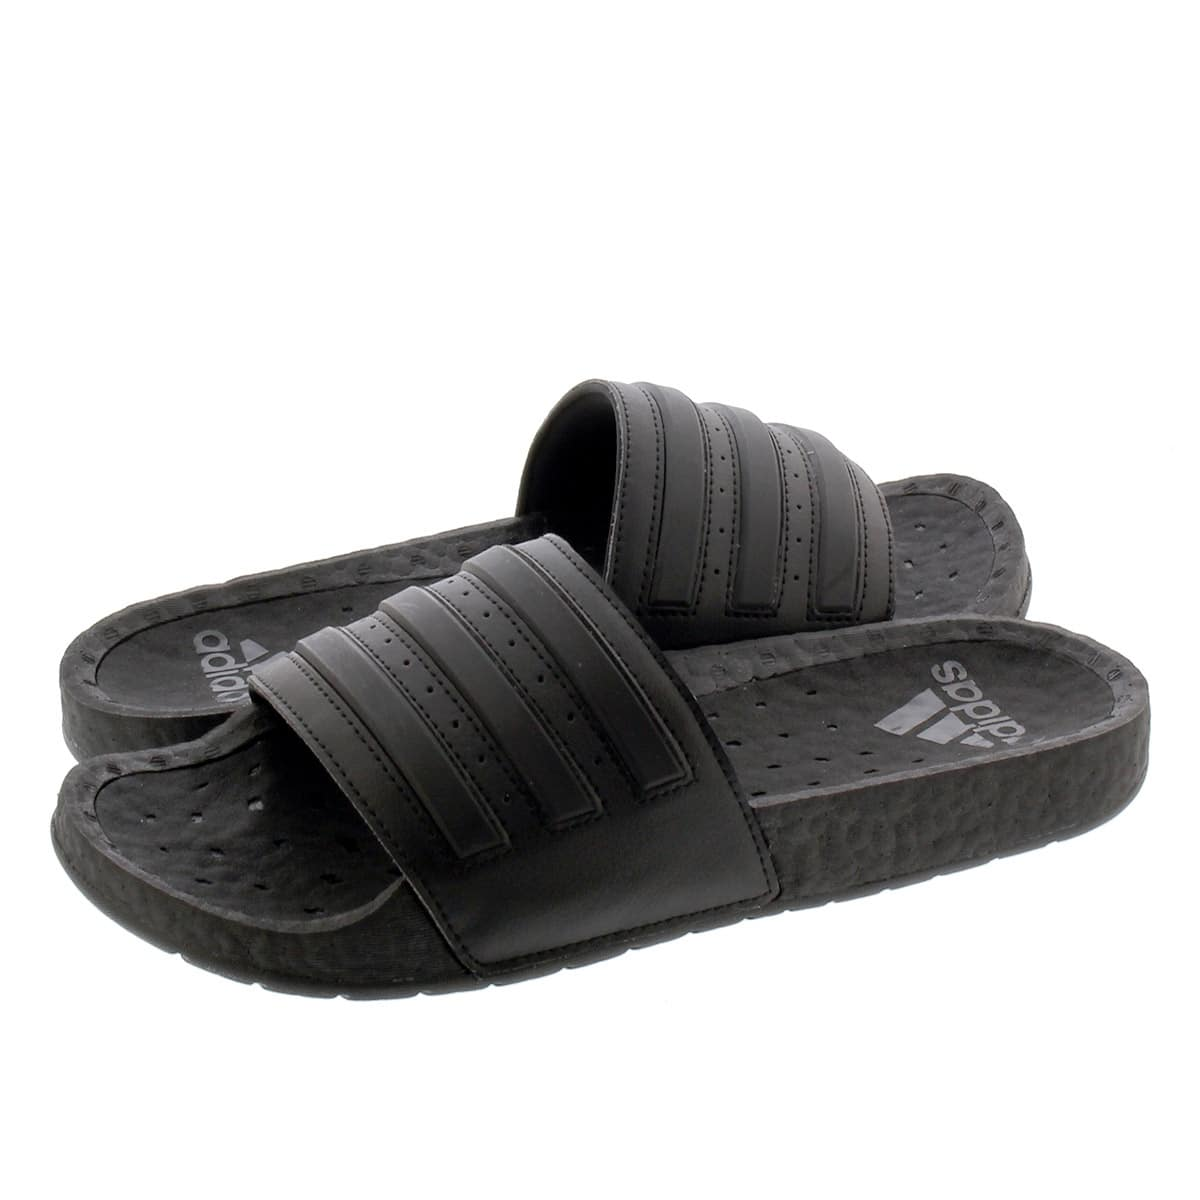 Salón de clases Mago Calificación  Adidas Adilette Boost Ultraboost Slides (triple black) $35 FS most ...